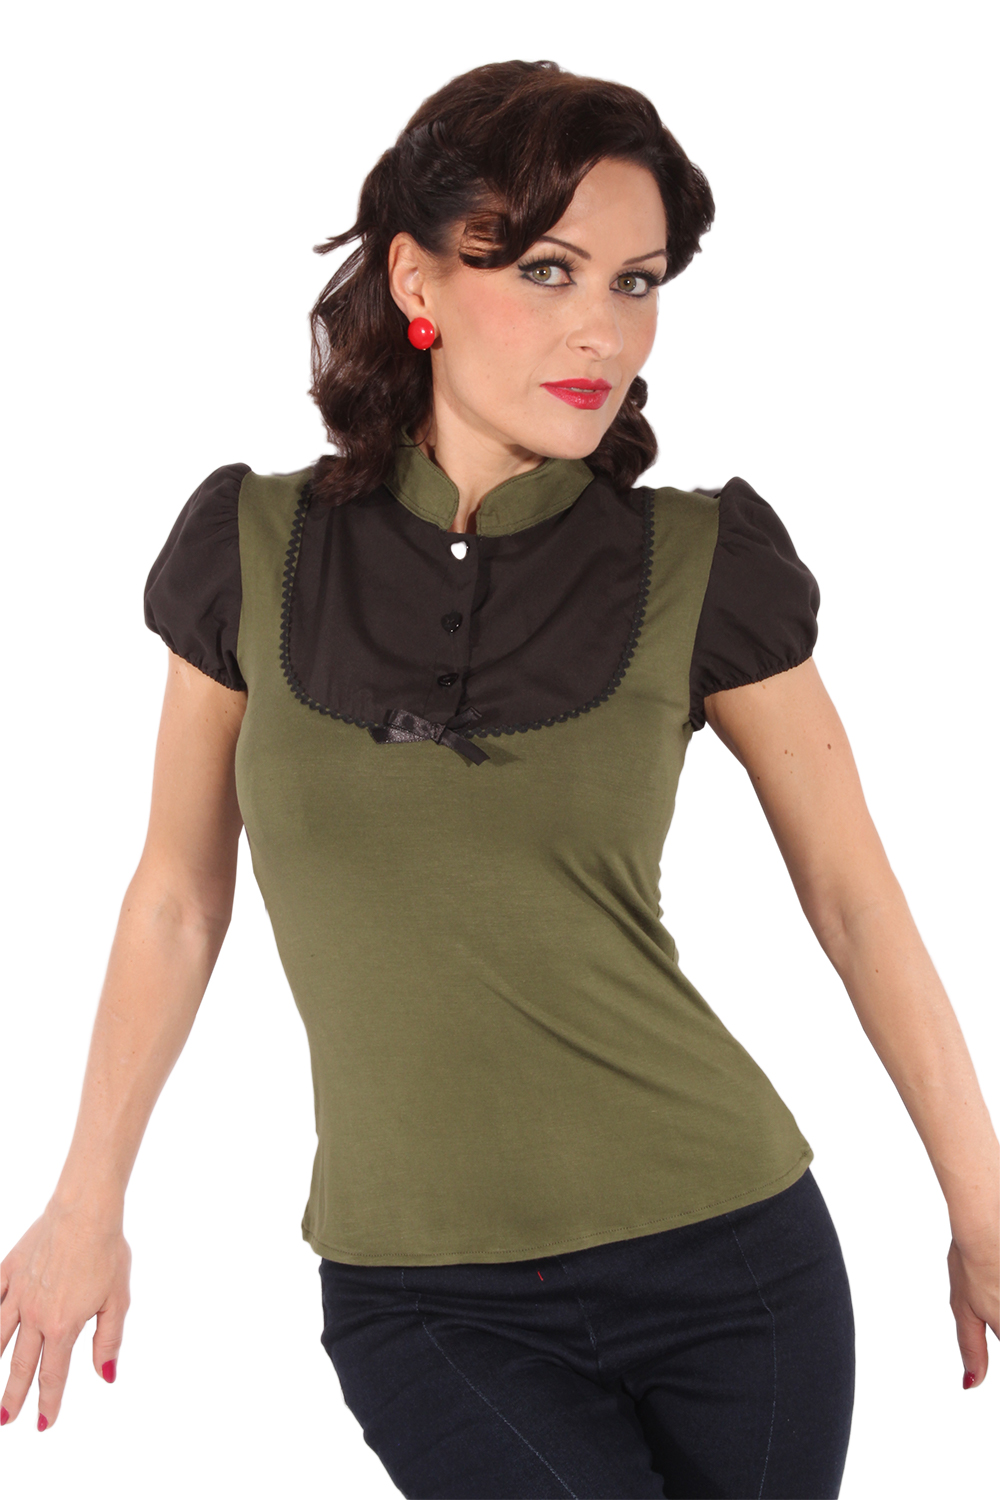 Retro Puffärmel pin up Rockabilly Military Bluse T-Shirt oliv schwarz